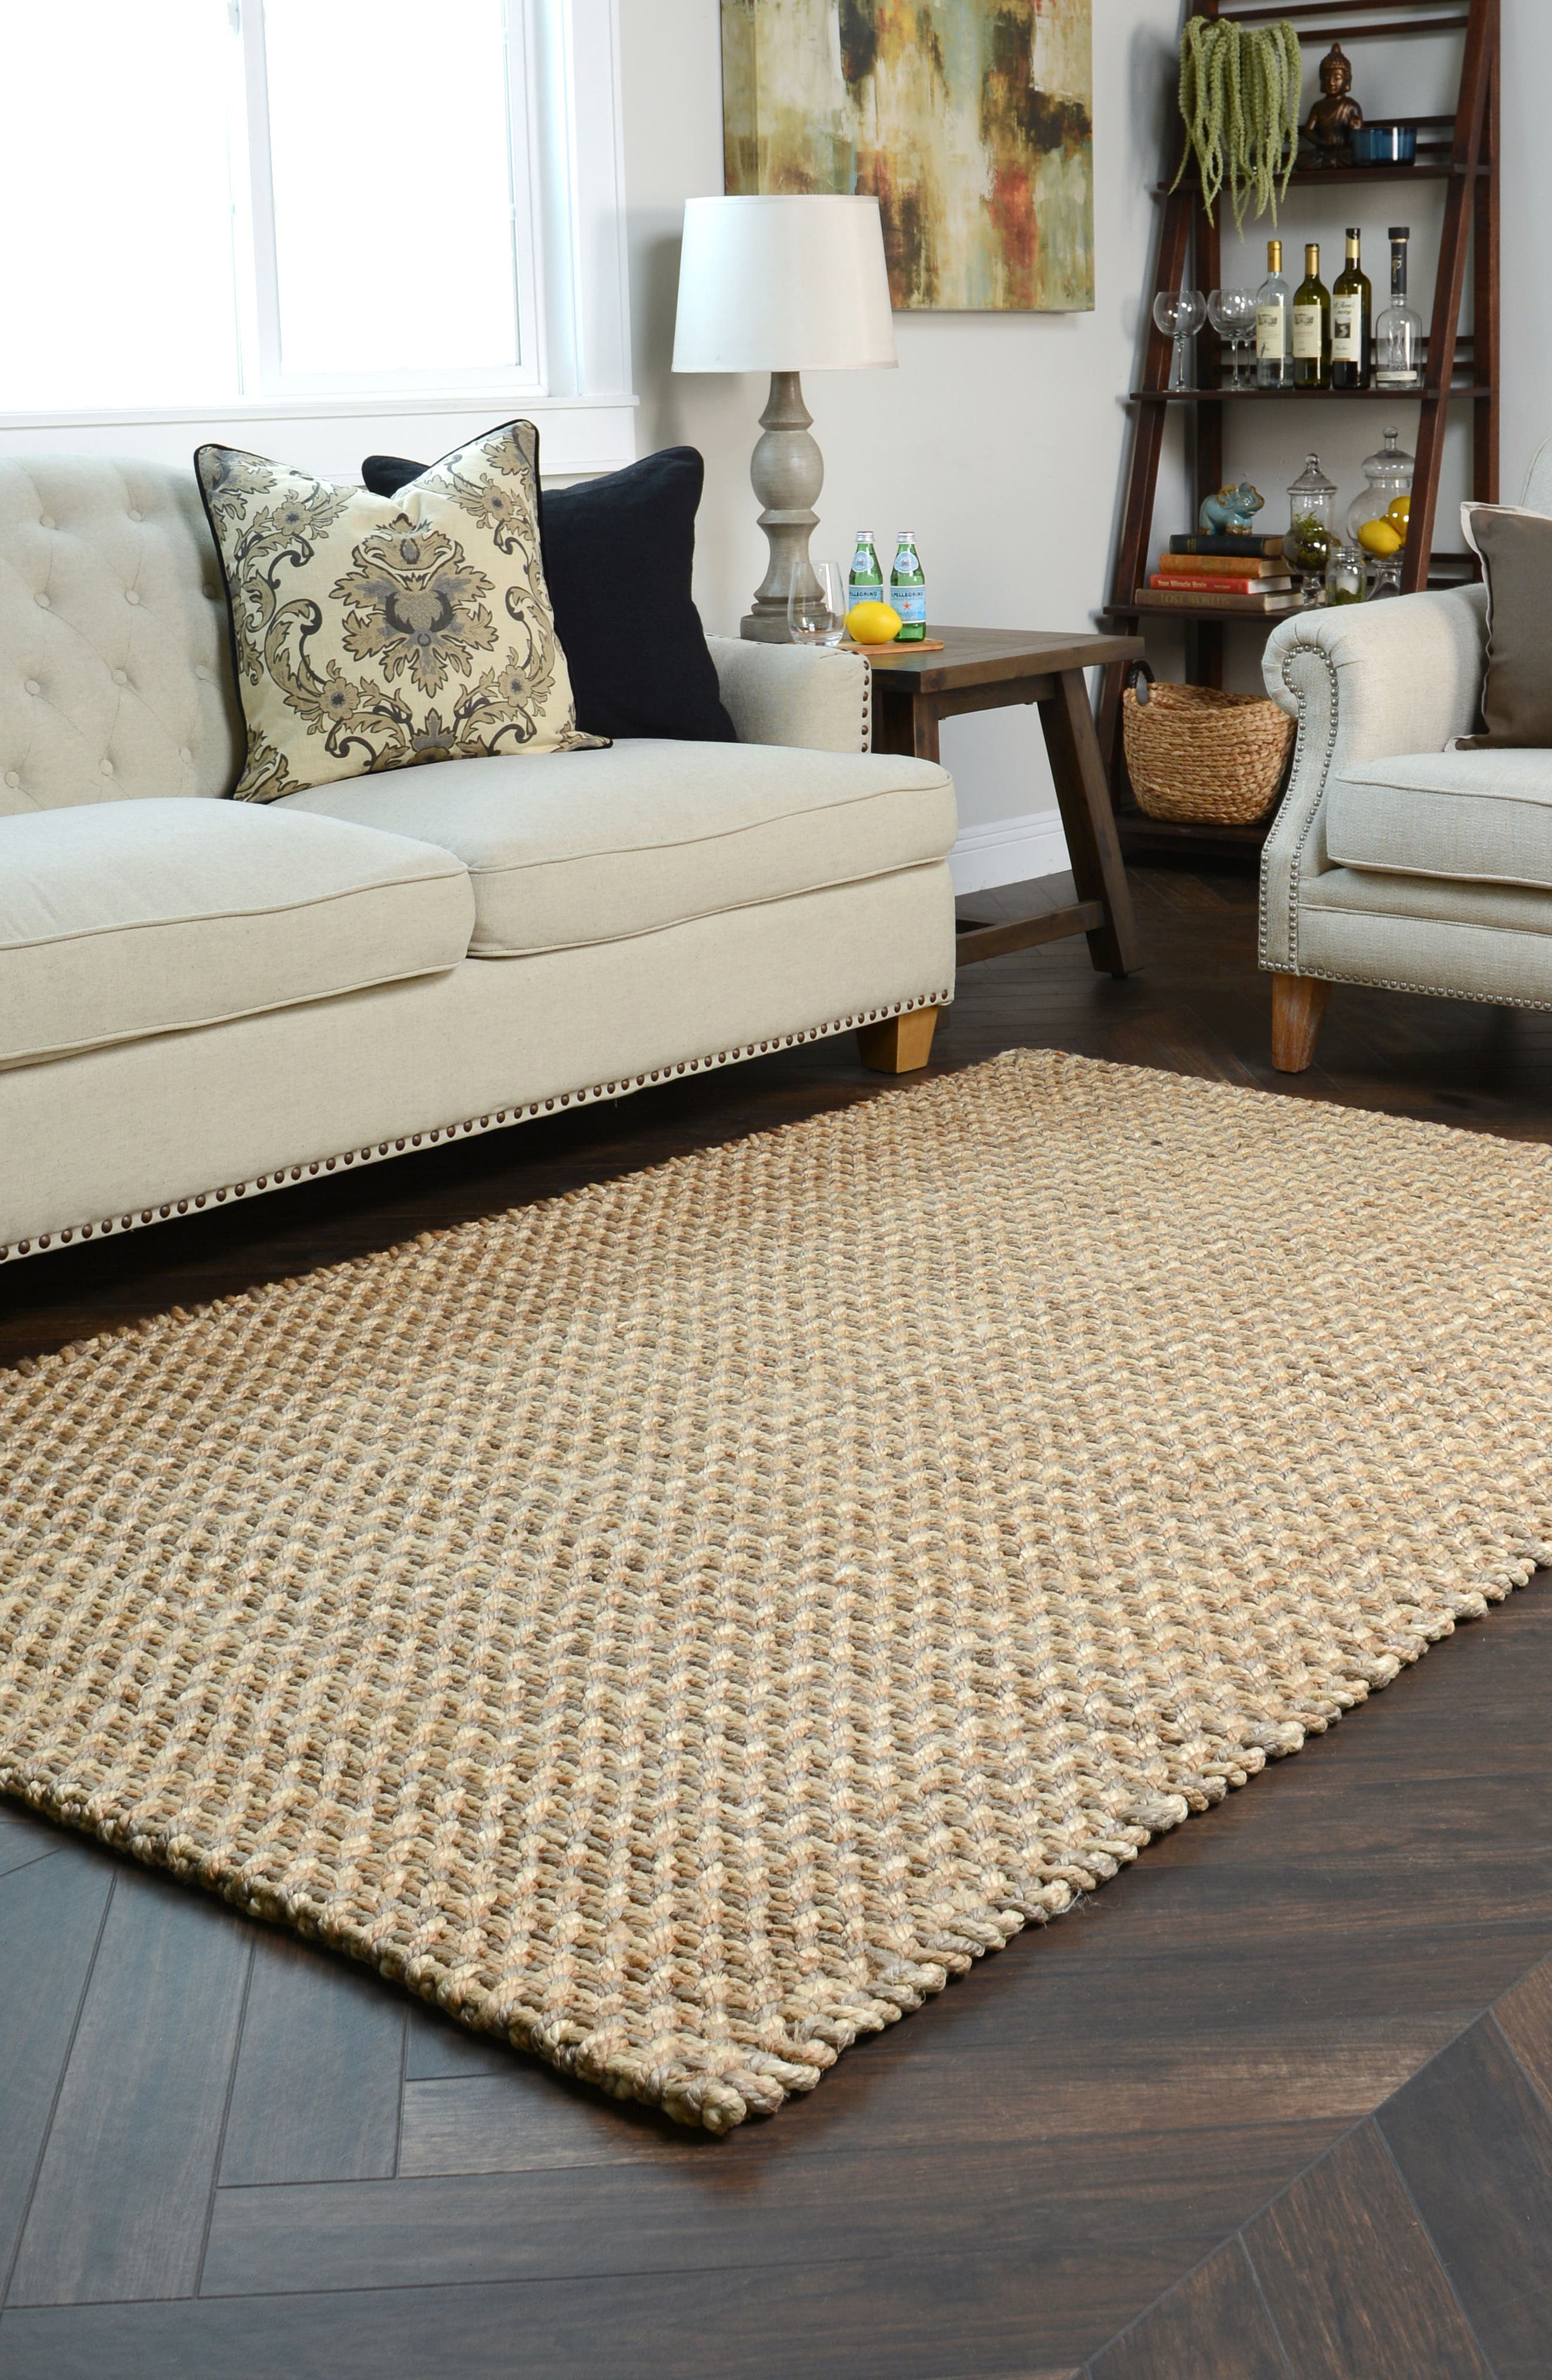 Ladera Handwoven Rug,                             Alternate thumbnail 4, color,                             Natural/ Bleach